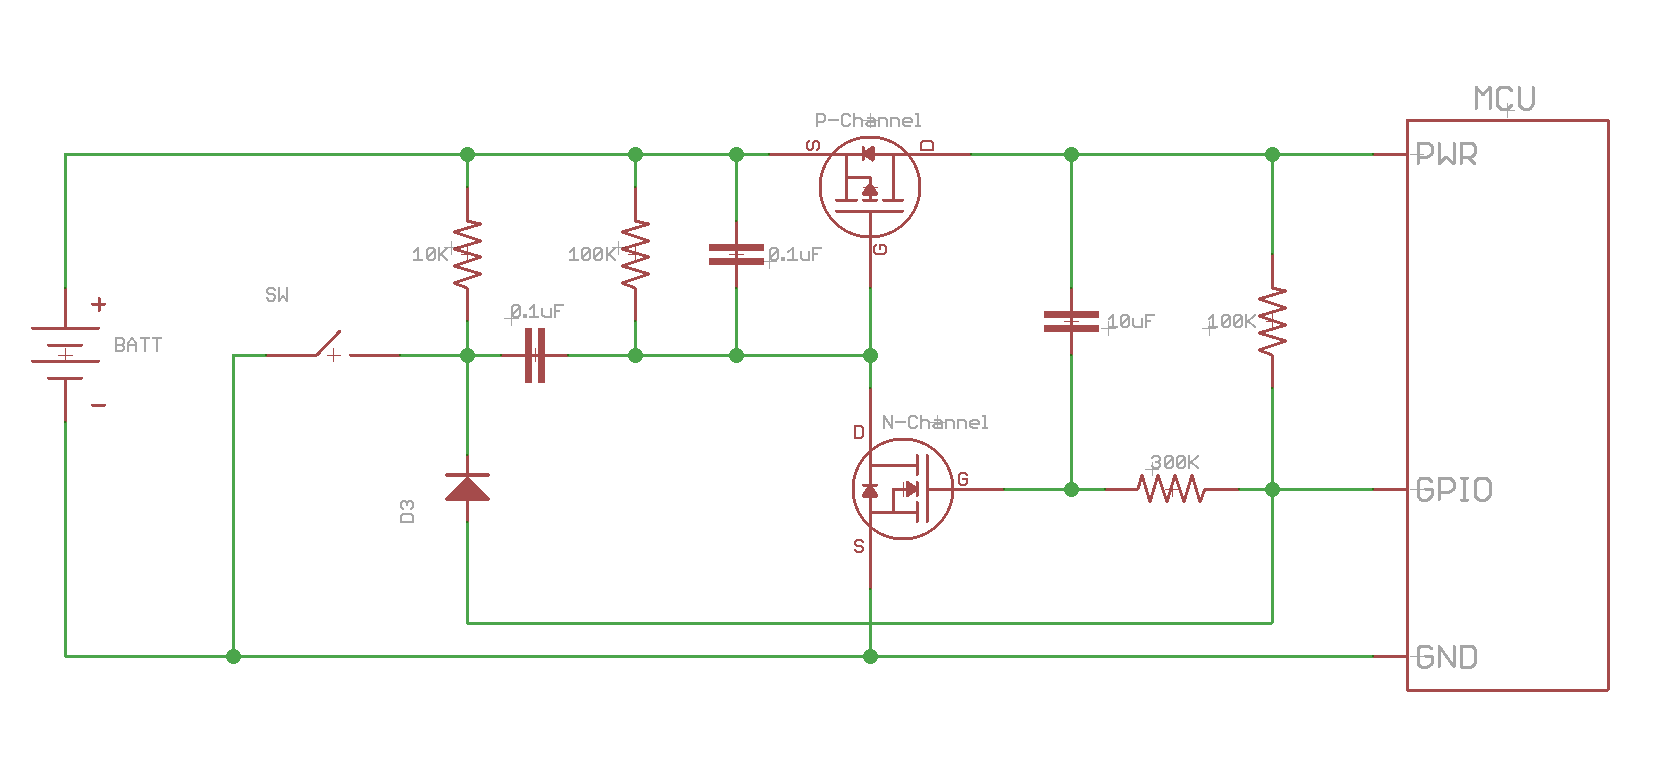 hight resolution of when the mcu is ready it can drive the gpio low which will then turn off the circuit